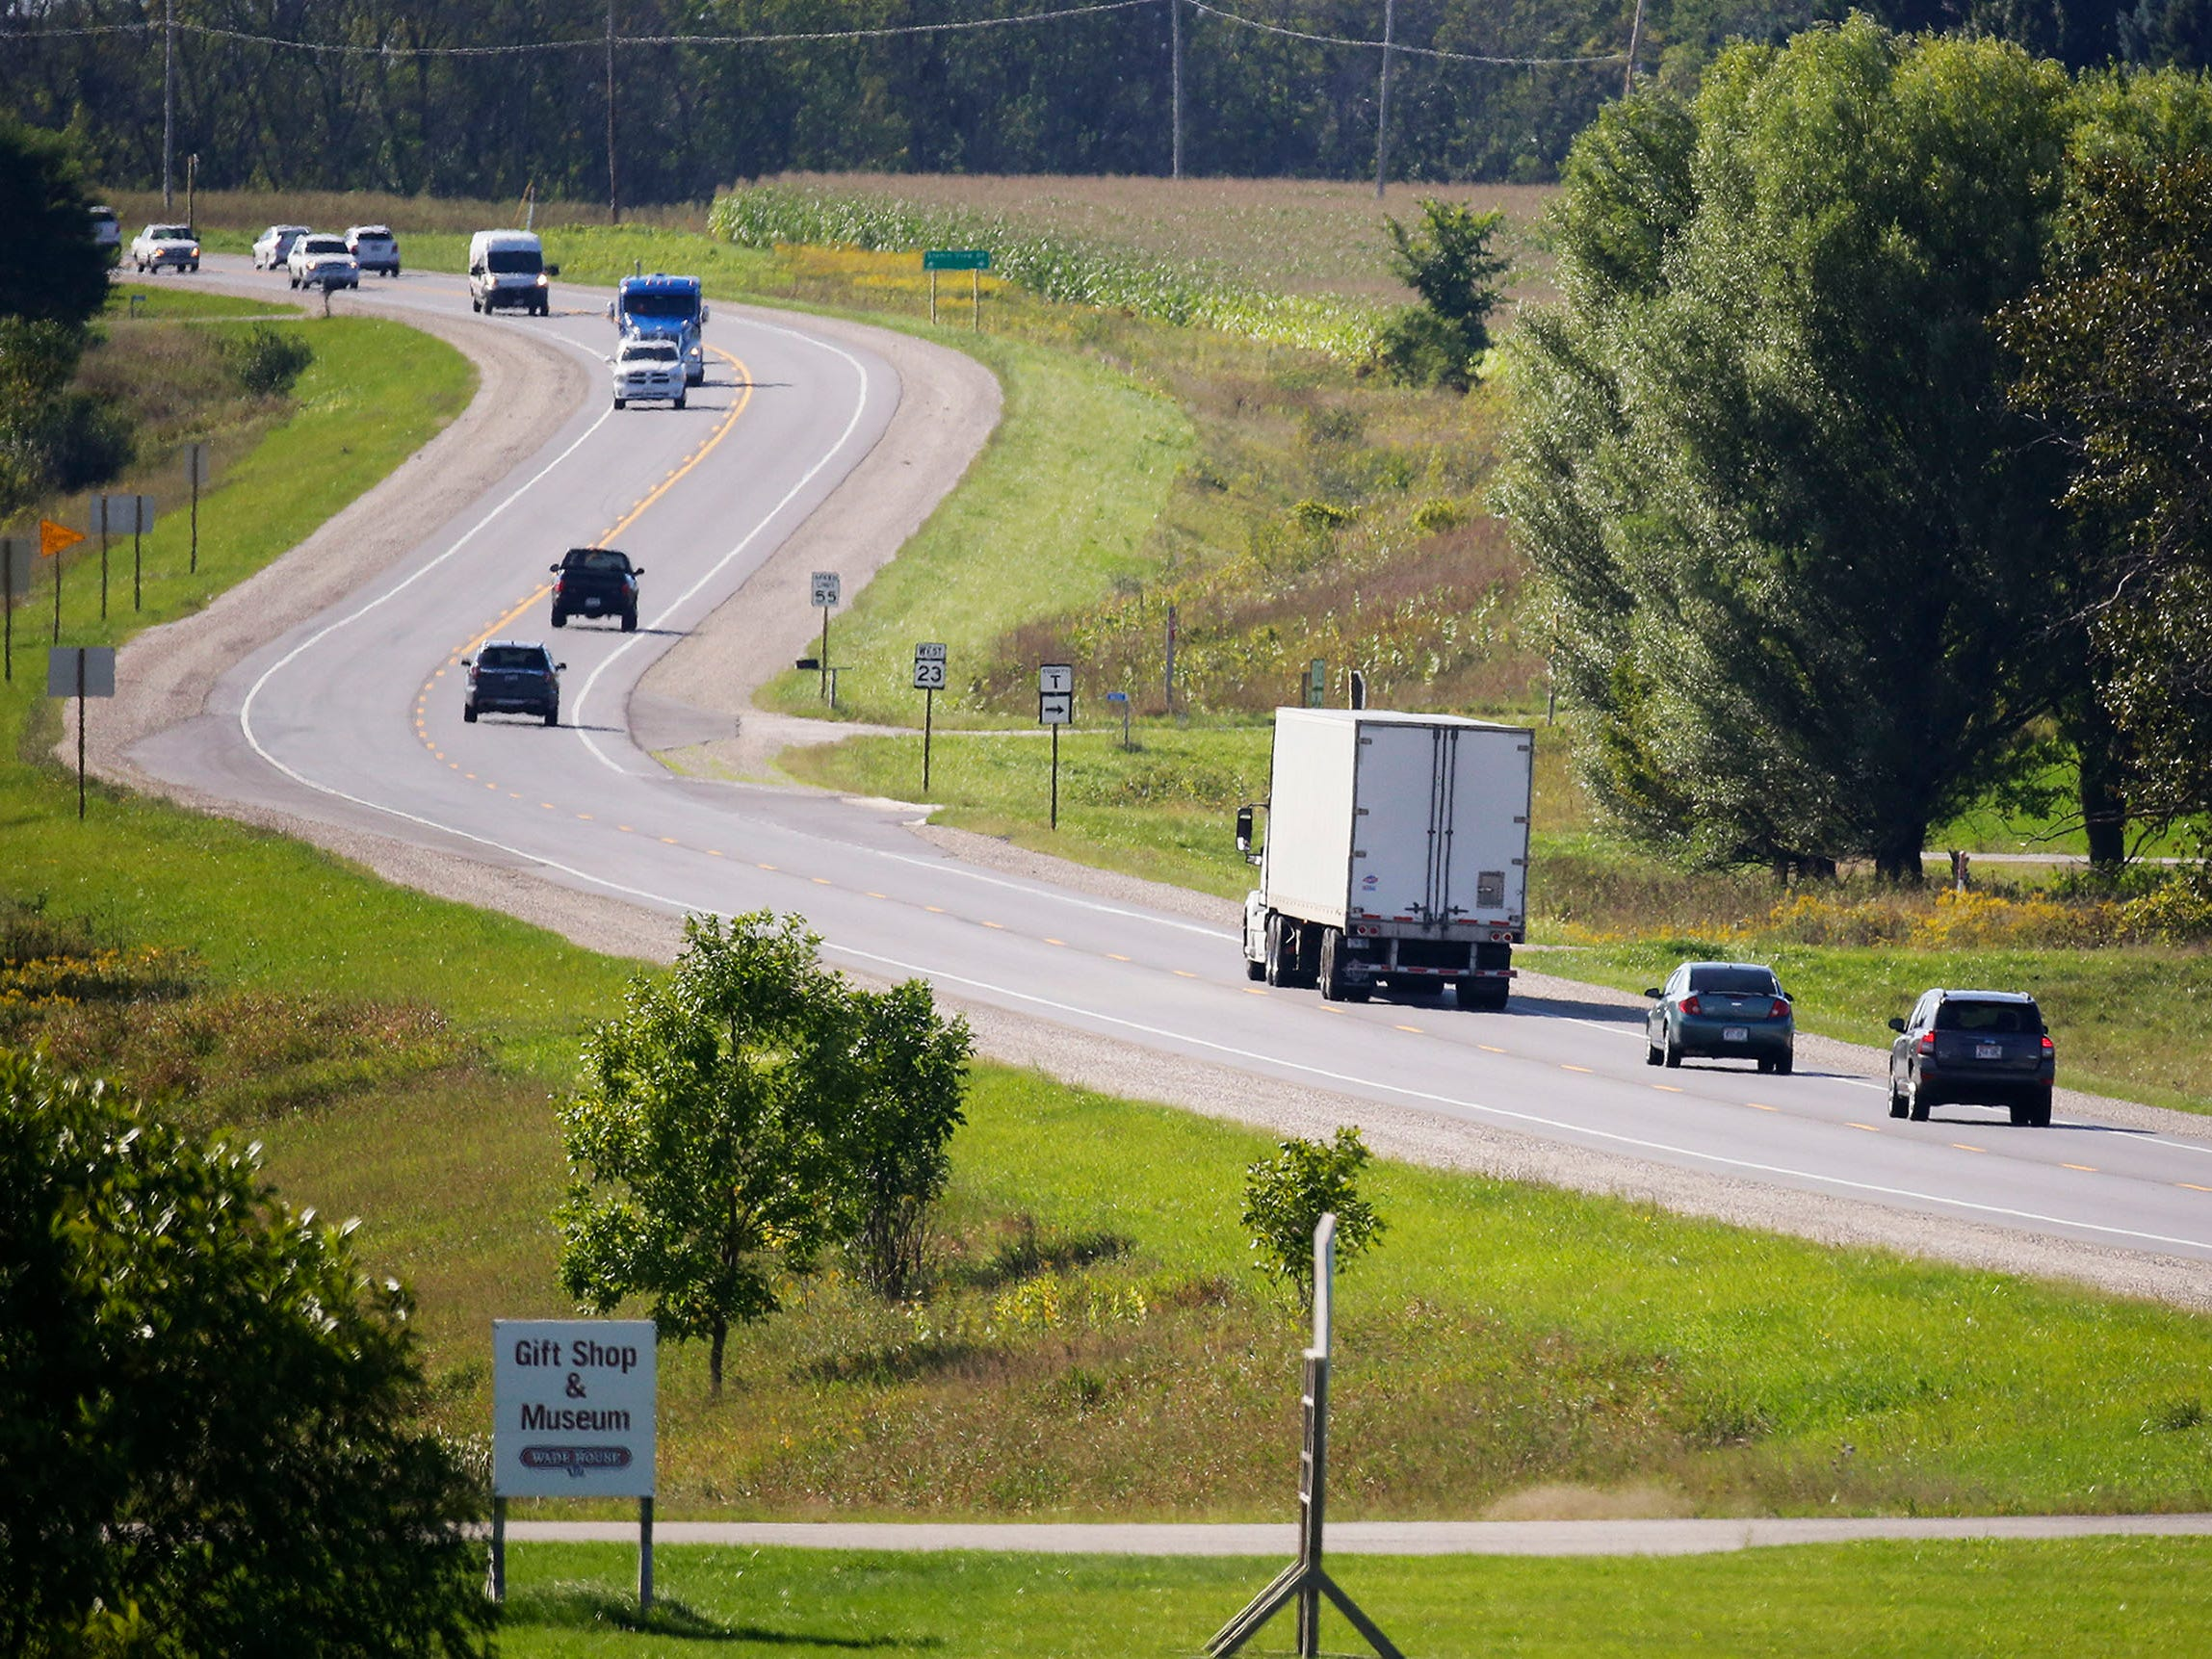 Traffic flows on state Highway 23, Thursday, September 6, 2018, near Greenbush, Wis.  The state is moving ahead with upgrading the road to a four-lane road.